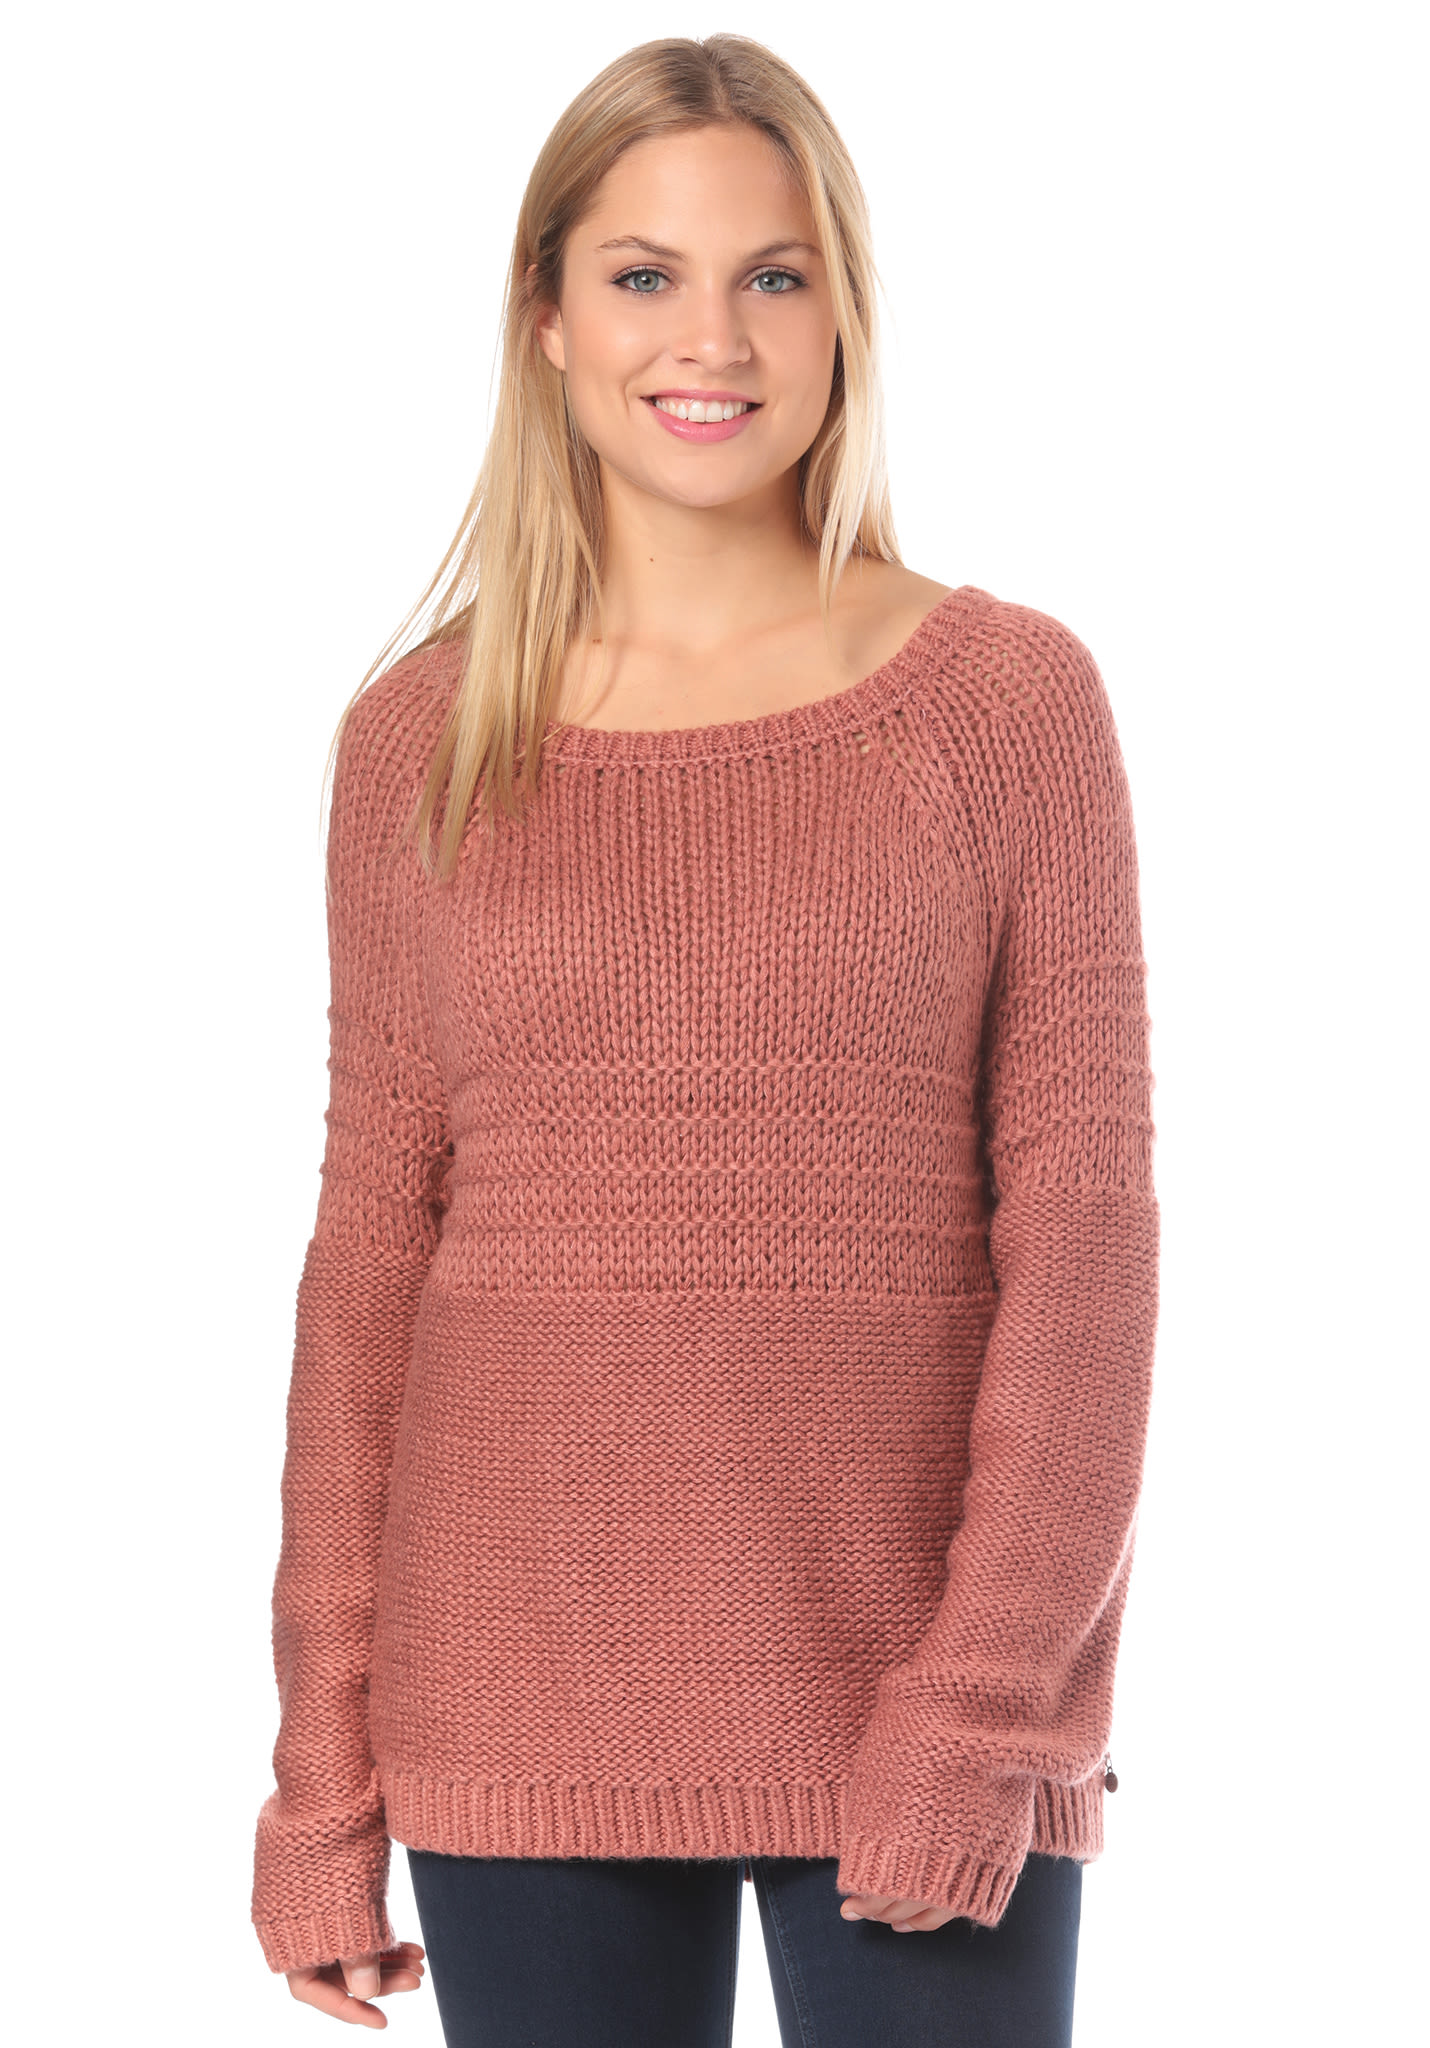 factory authentic 97761 aed45 Roxy Urban Stories - Strickpullover für Damen - Rot